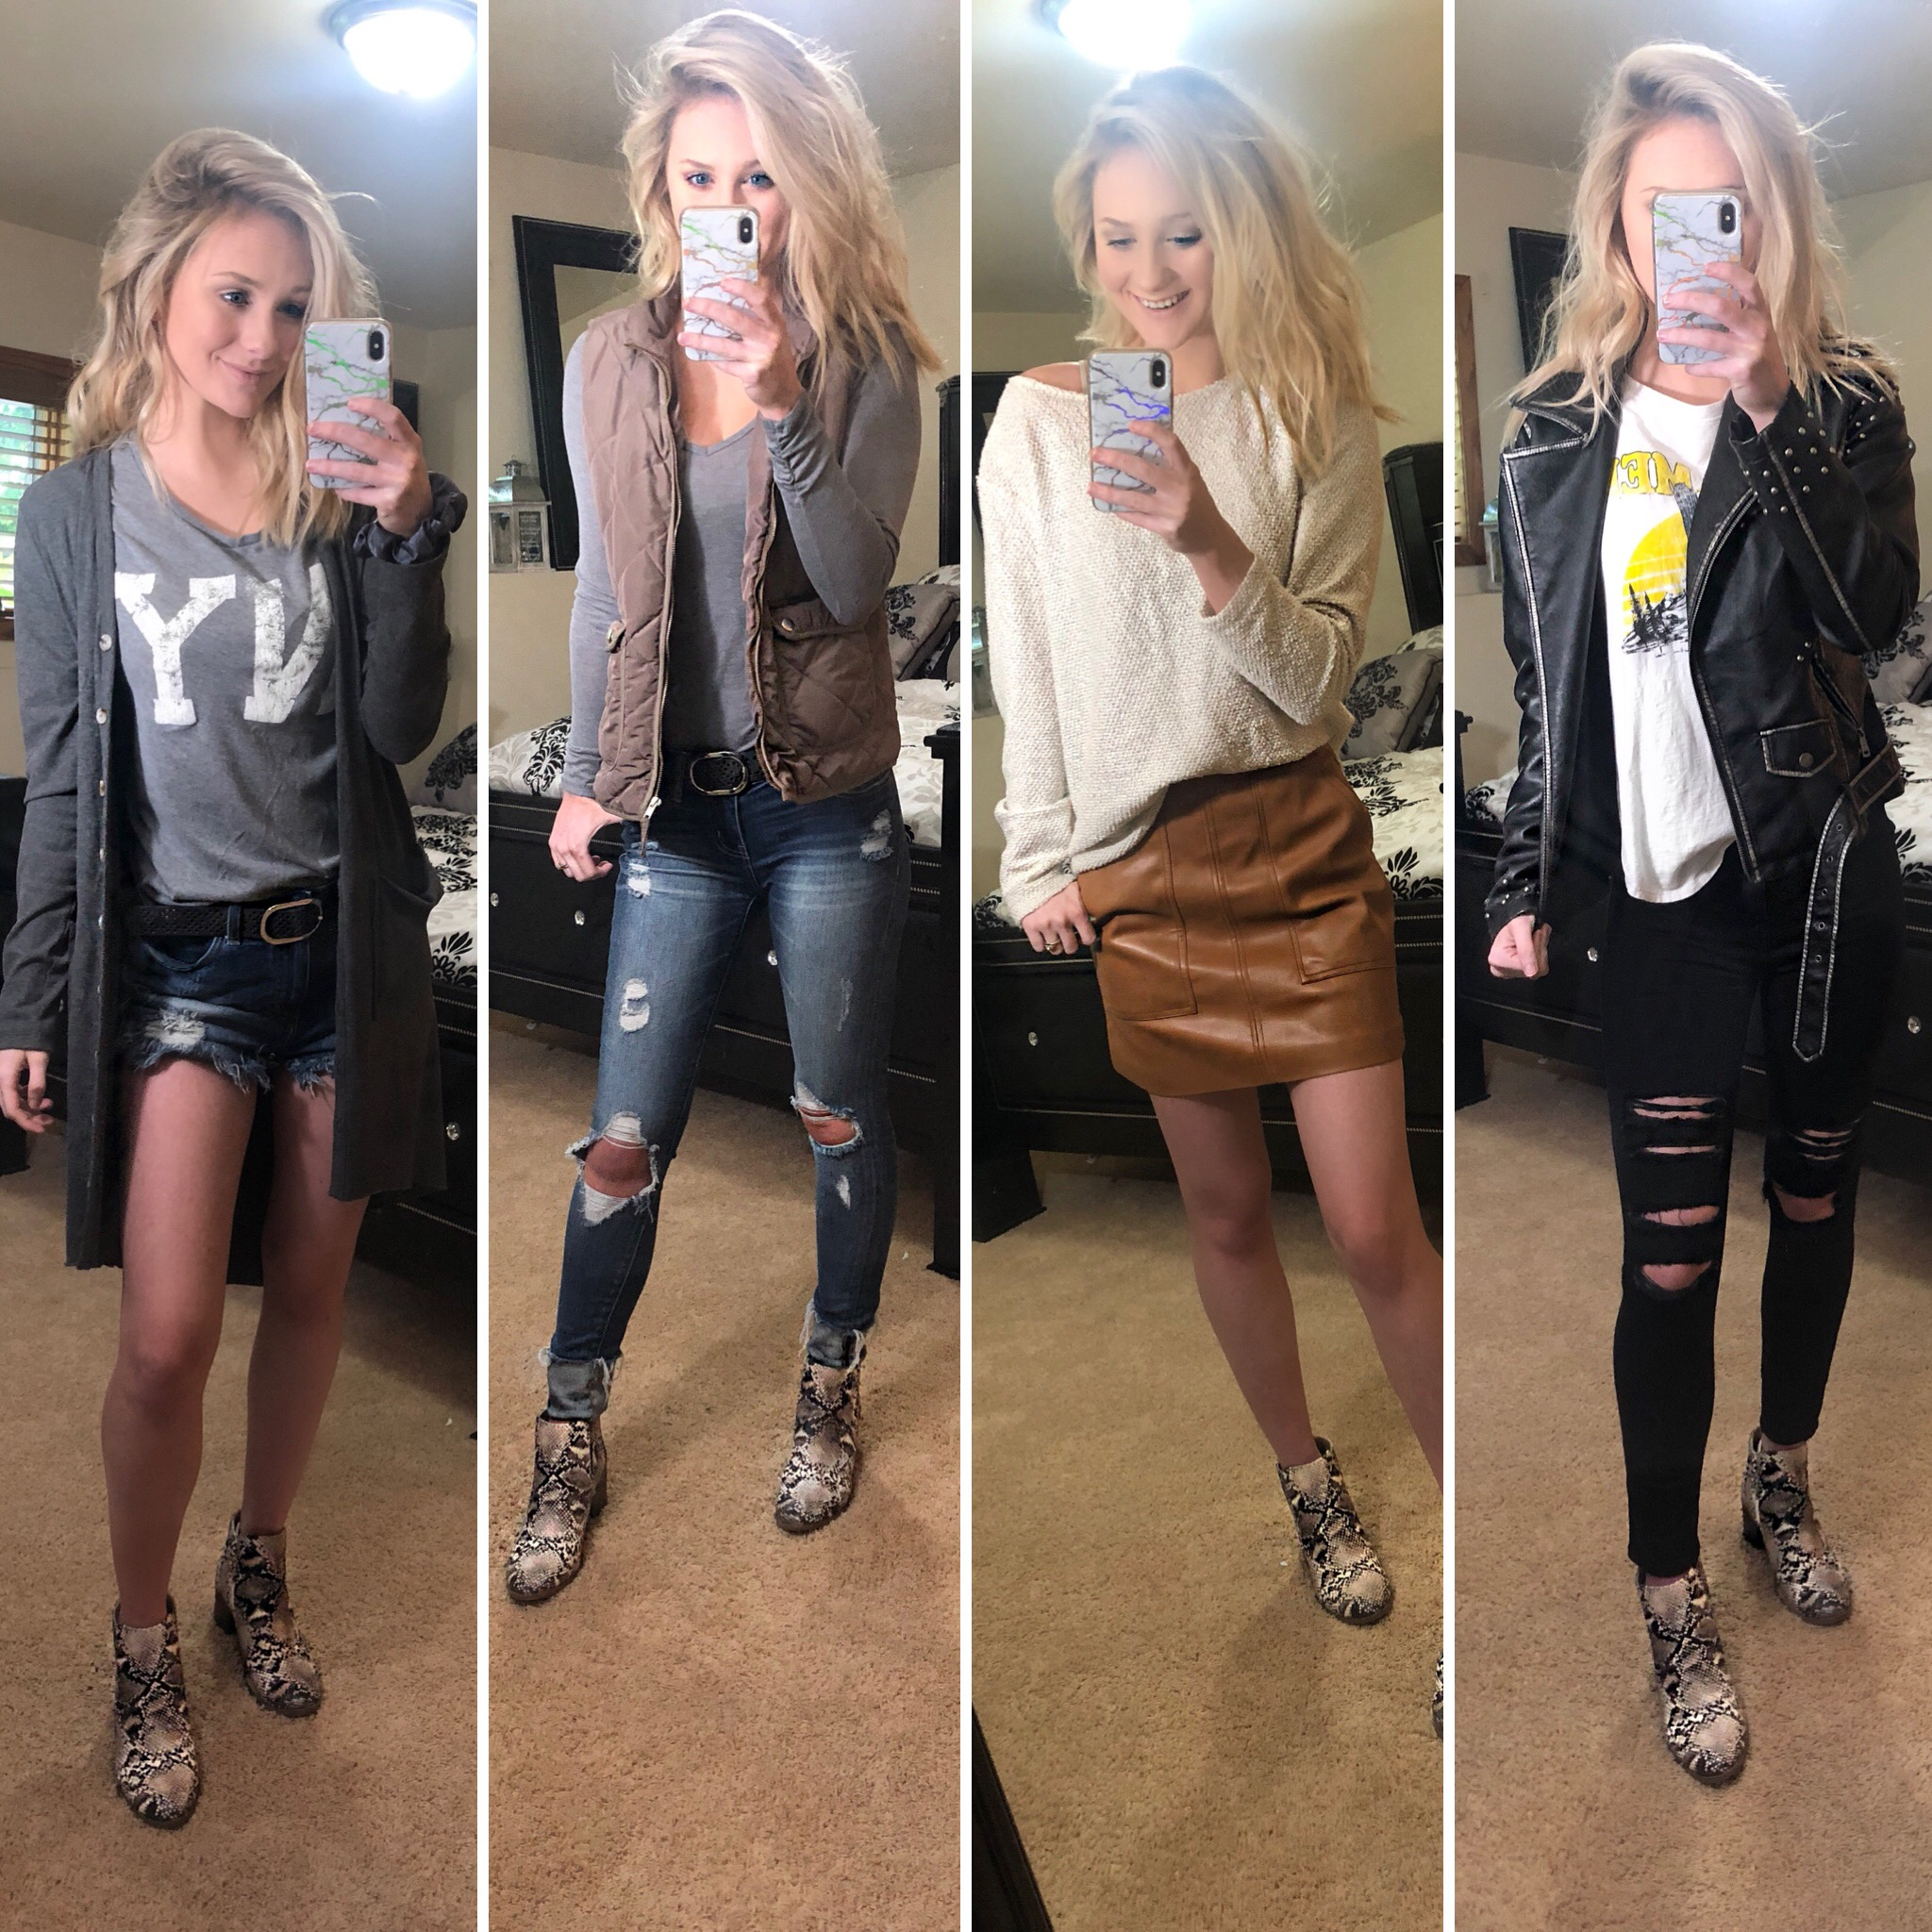 Fashion Beauty And Lifestyle Blogs: A Blog For Fashion, Beauty, And Lifestyle